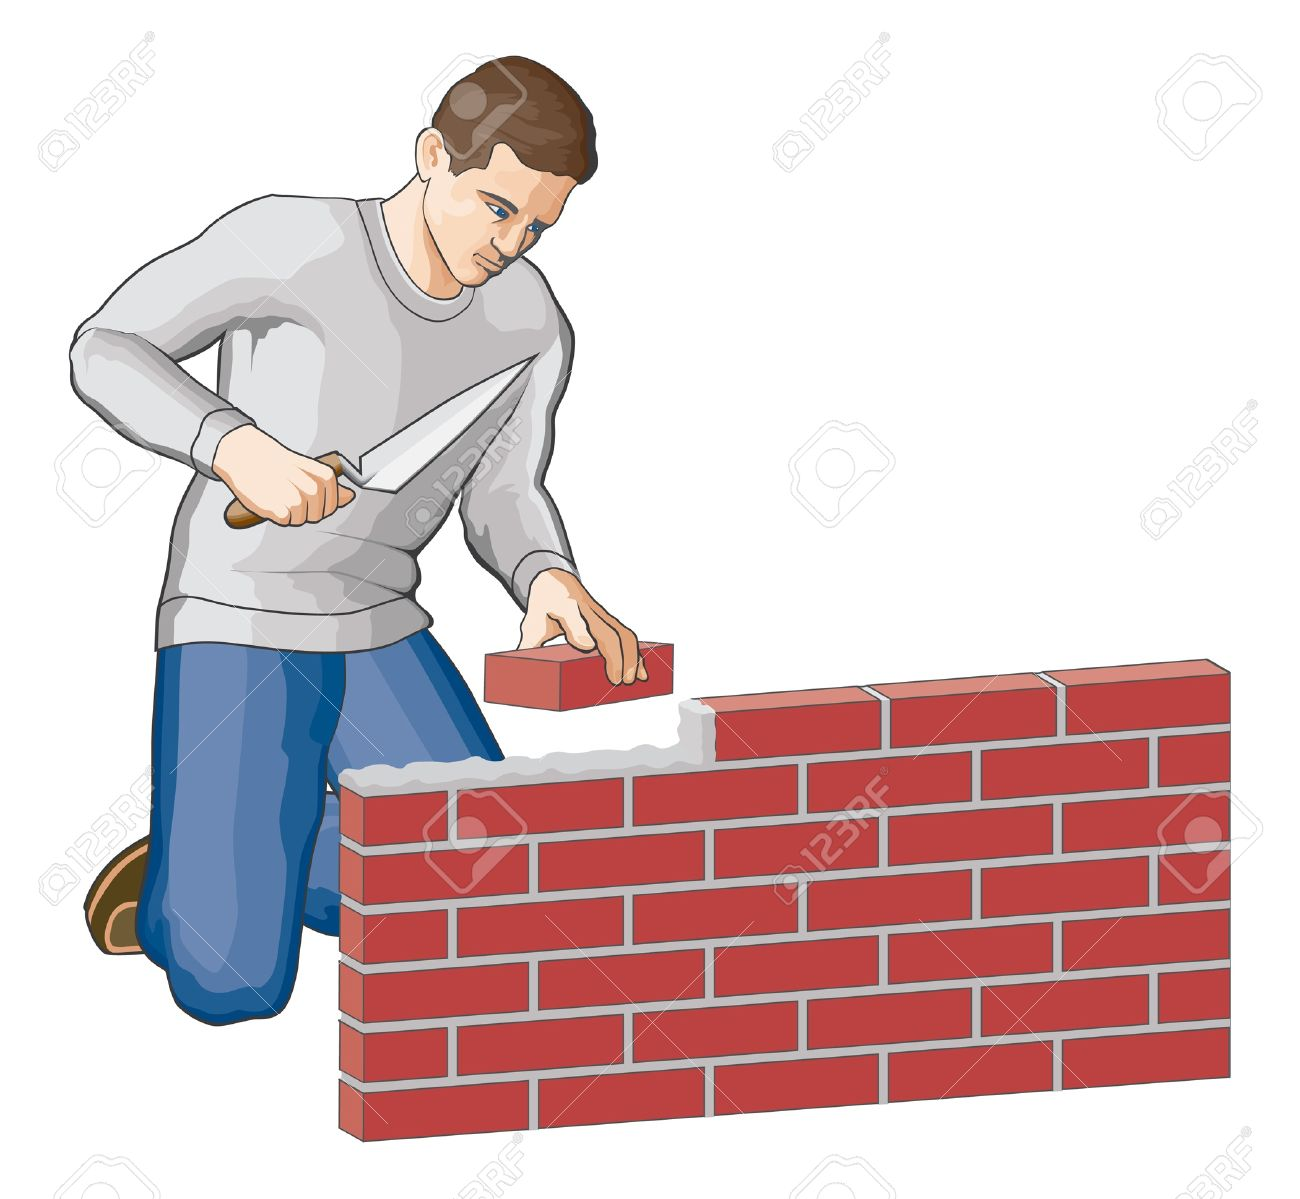 Bricklayer Is An Illustration Of A Man Building A Brick Wall.